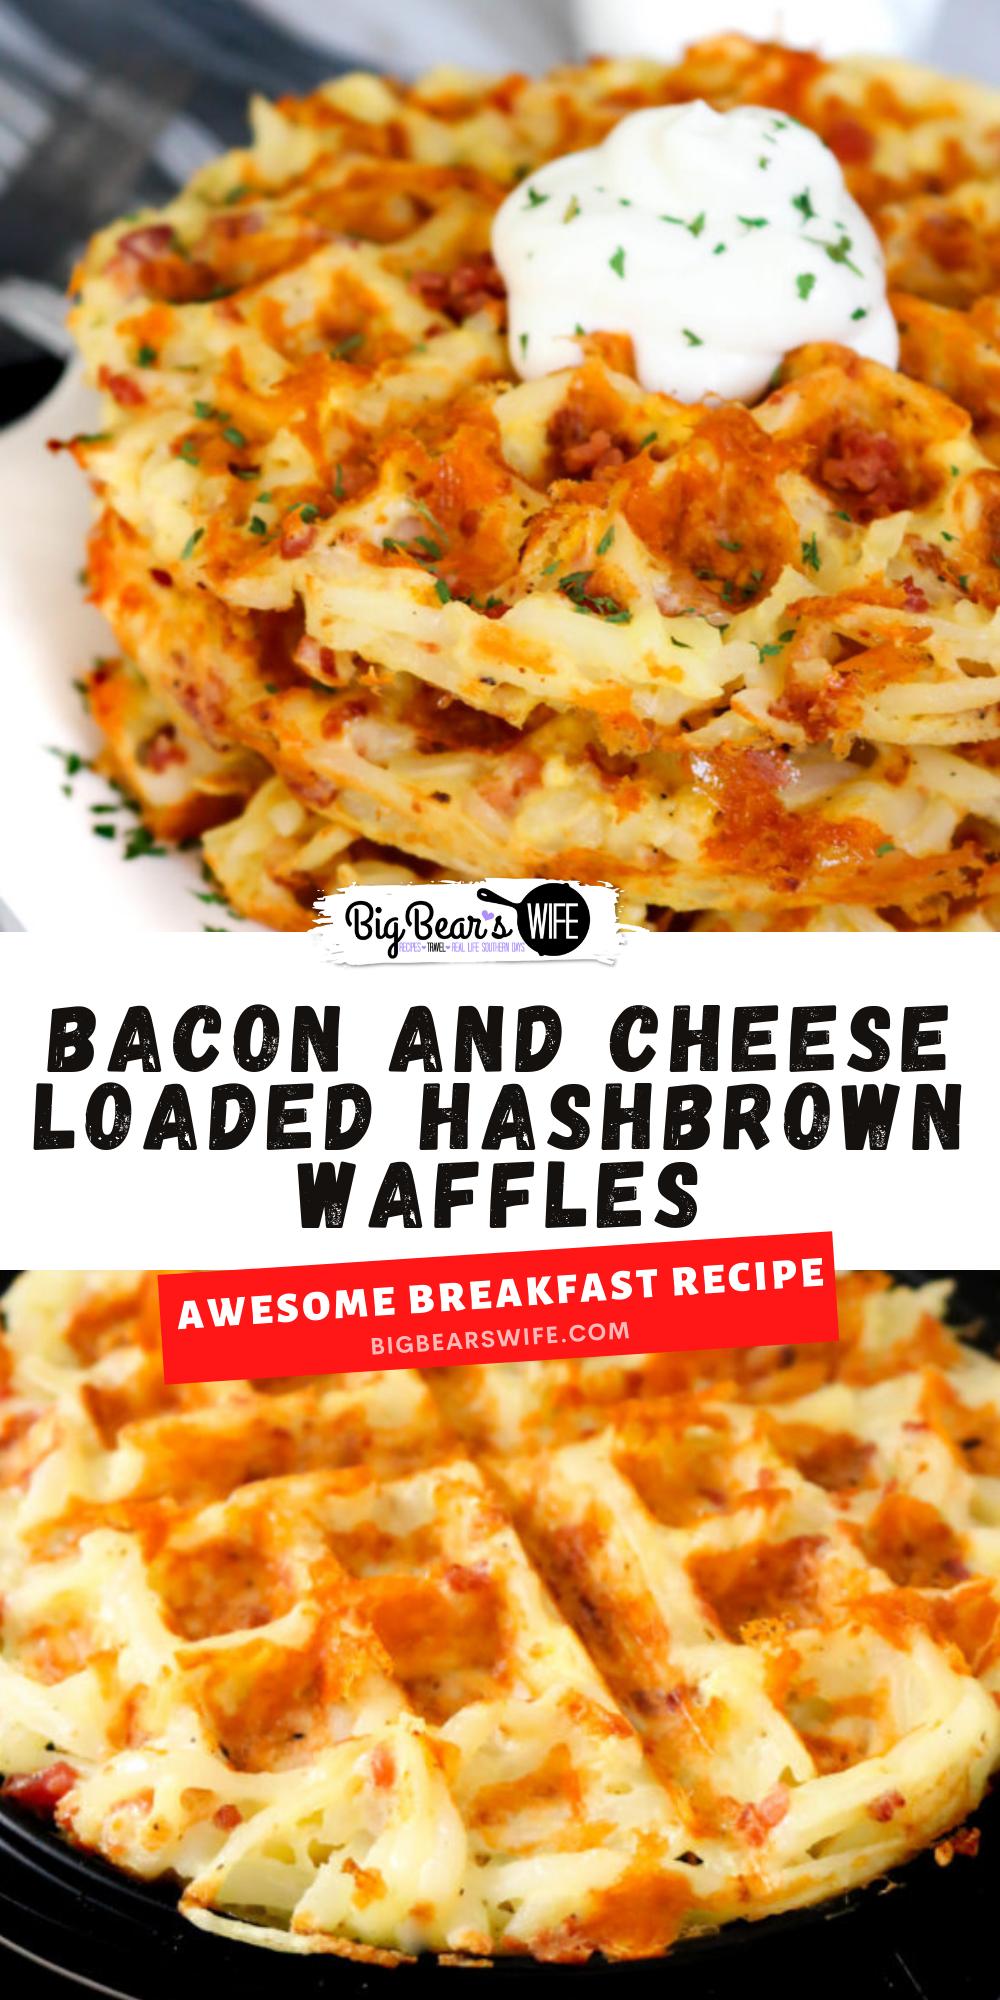 These Bacon and Cheese Loaded Hashbrown Waffles are packed with shredded hashbrowns, eggs, bacon and shredded cheese for the ultimatebrunch entree! via @bigbearswife